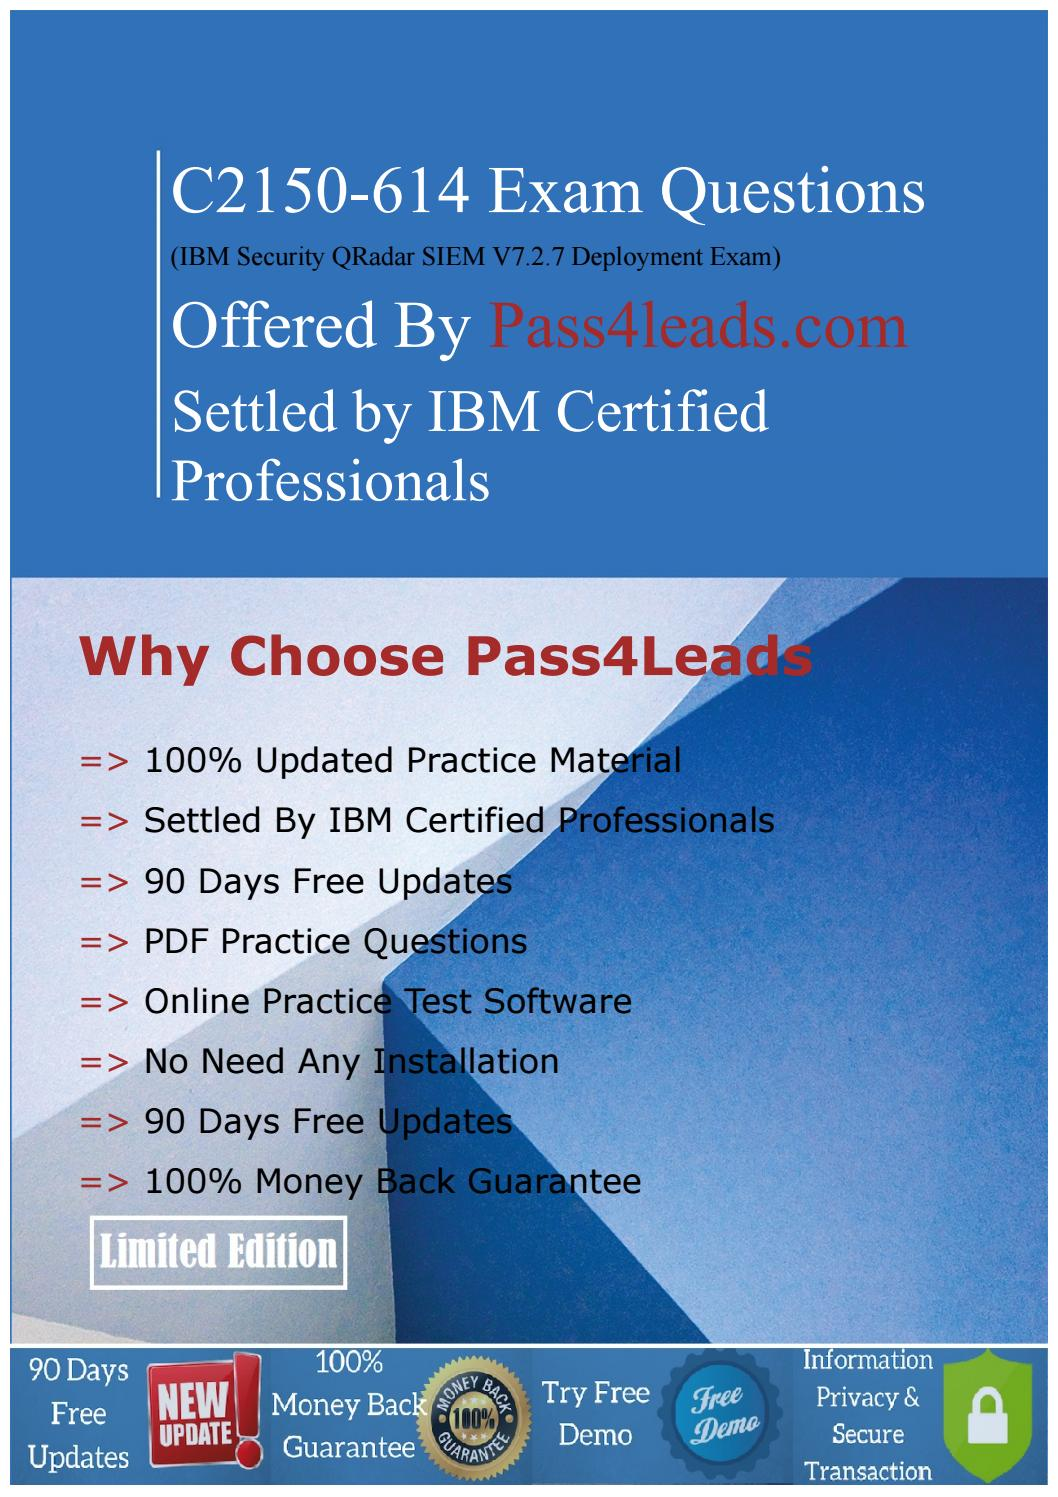 Recommendations IBM C2150-614 Exam Questions To Pass In